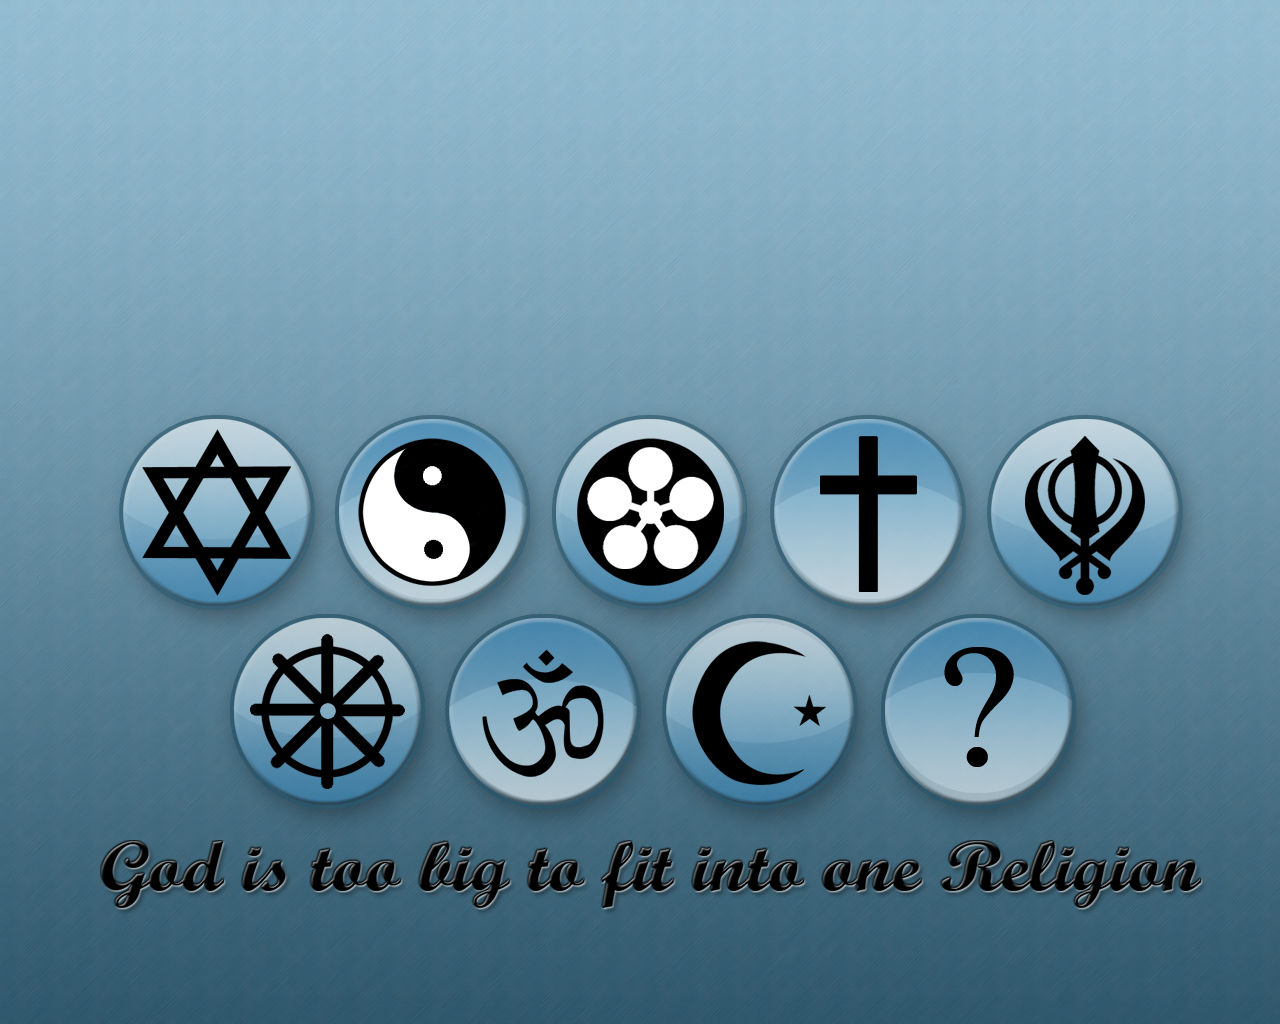 http://4.bp.blogspot.com/-w1oe3Drv2nU/T45i1oNJAkI/AAAAAAAAAEs/x4vXGmg6SCc/s1600/img-wallpapers-religion-wallpaper-gruzz-3470.jpg